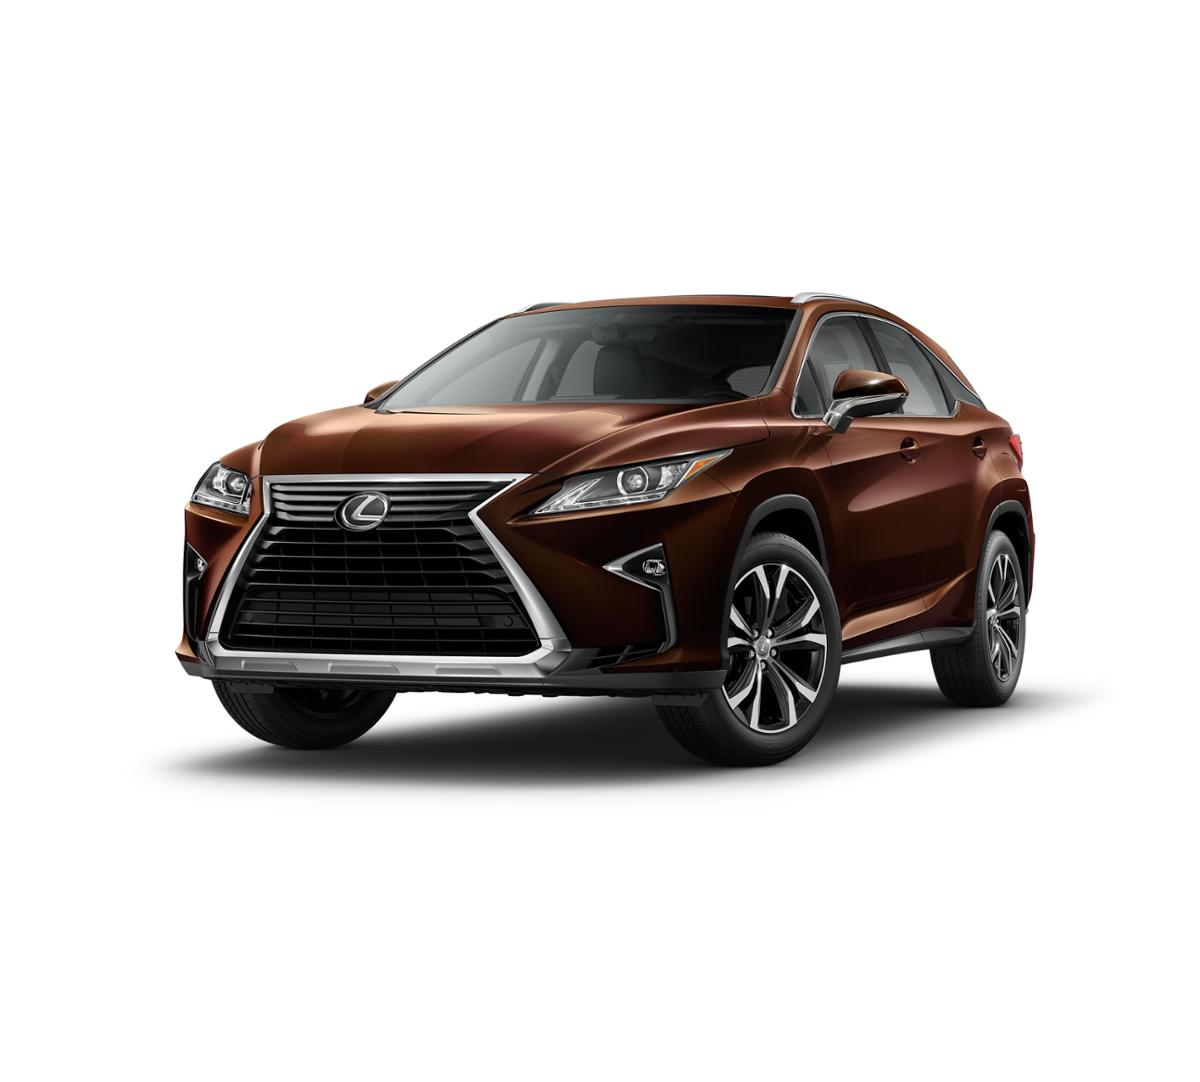 Larry h miller lexus spokane - 2017 Lexus Rx 350 Vehicle Photo In Spokane Wa 99201